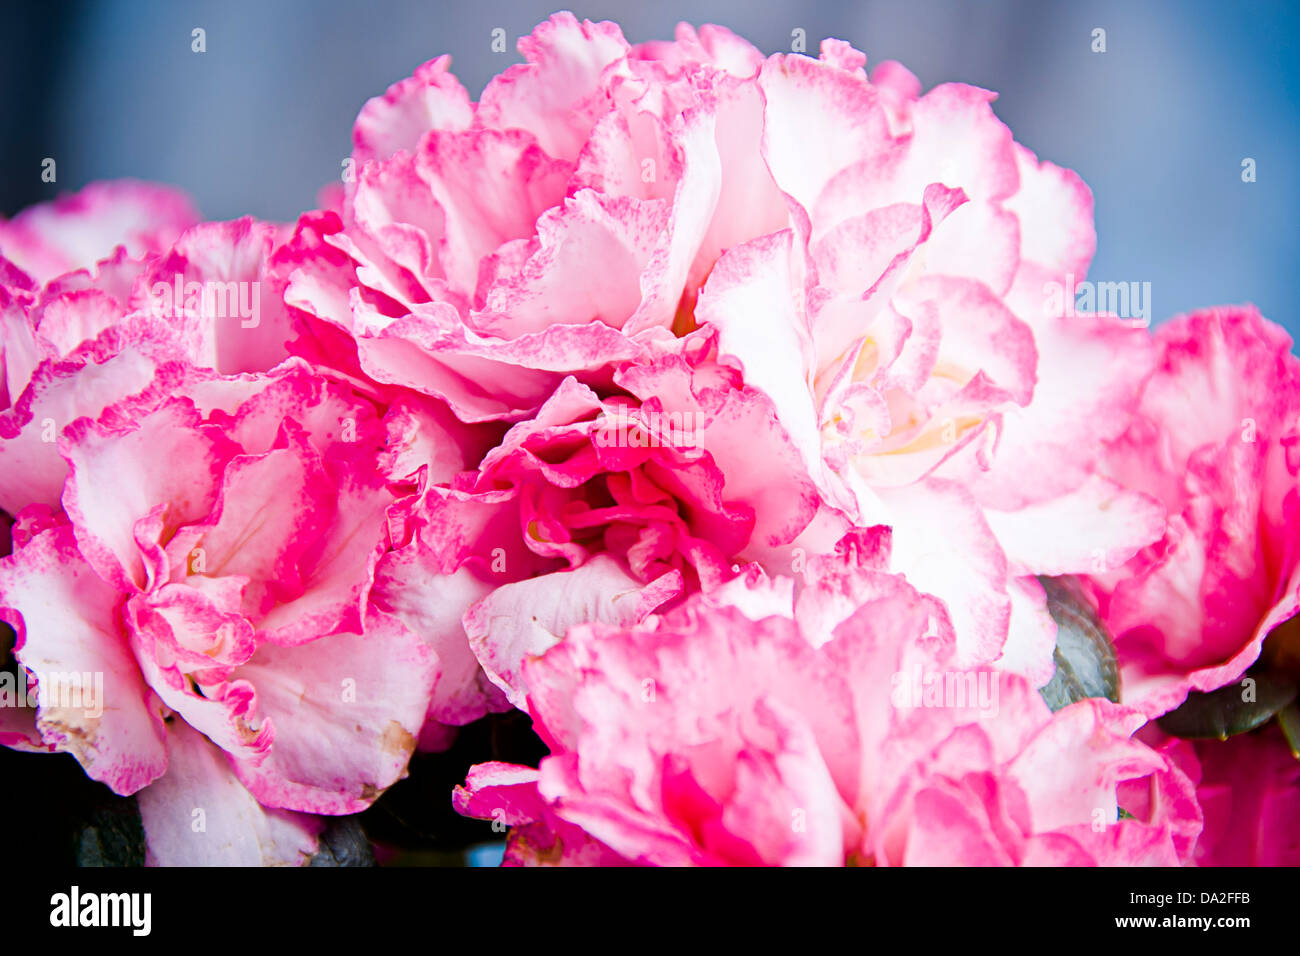 pink Carnation flowers - Stock Image